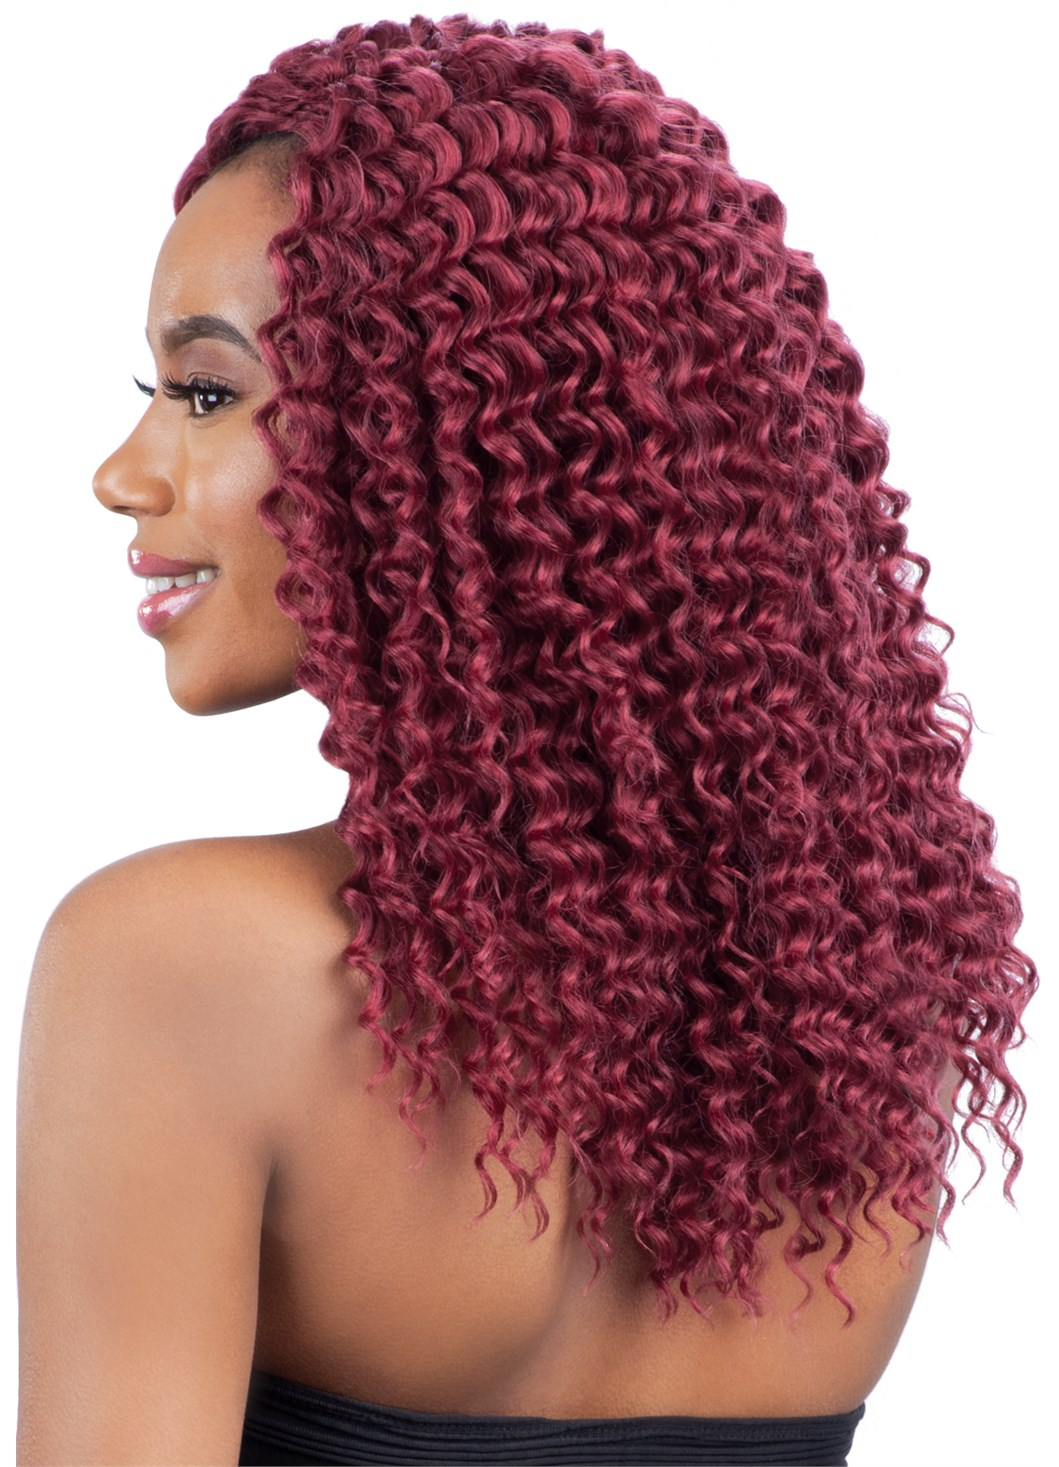 Crochet Hair Ebay : ... > Hair Care & Styling > Hair Extensions & Wigs > Hair Ex...